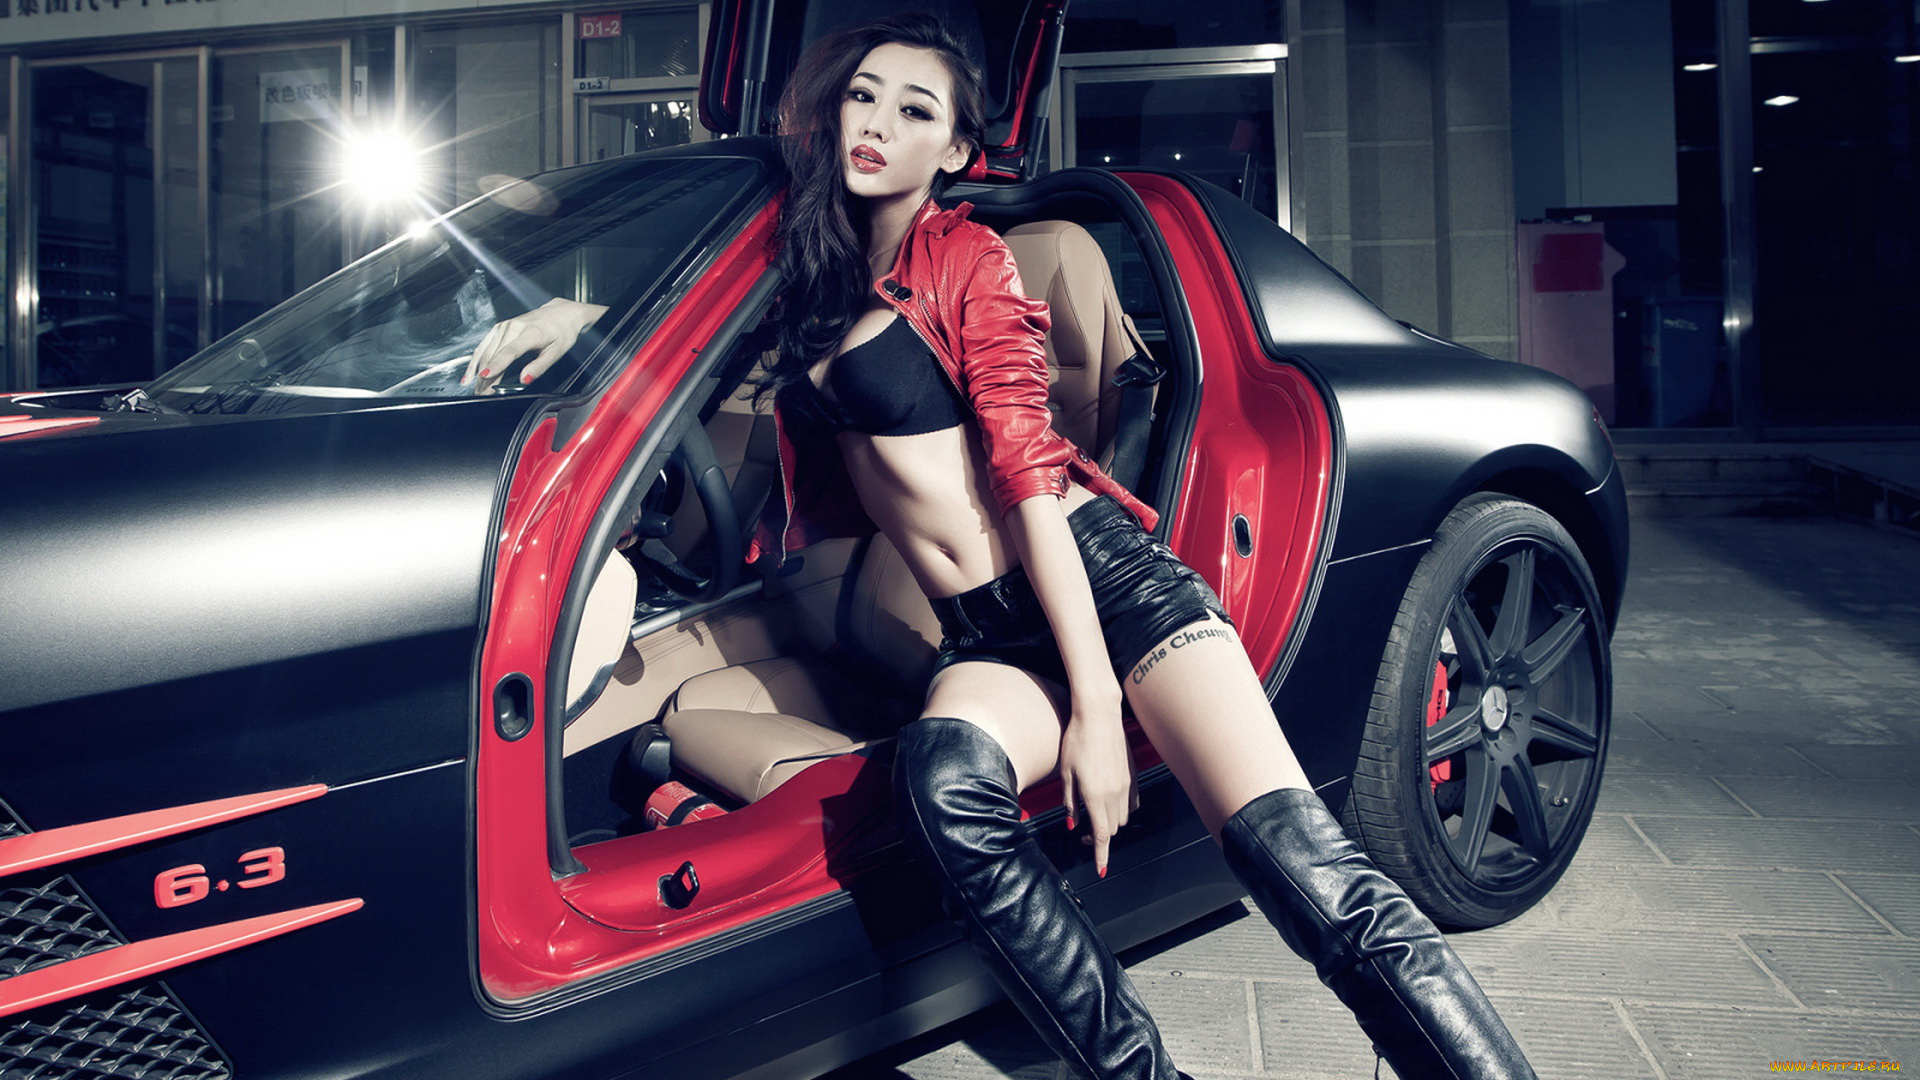 Sexy asian cars with girls, biker chicks pussy pics